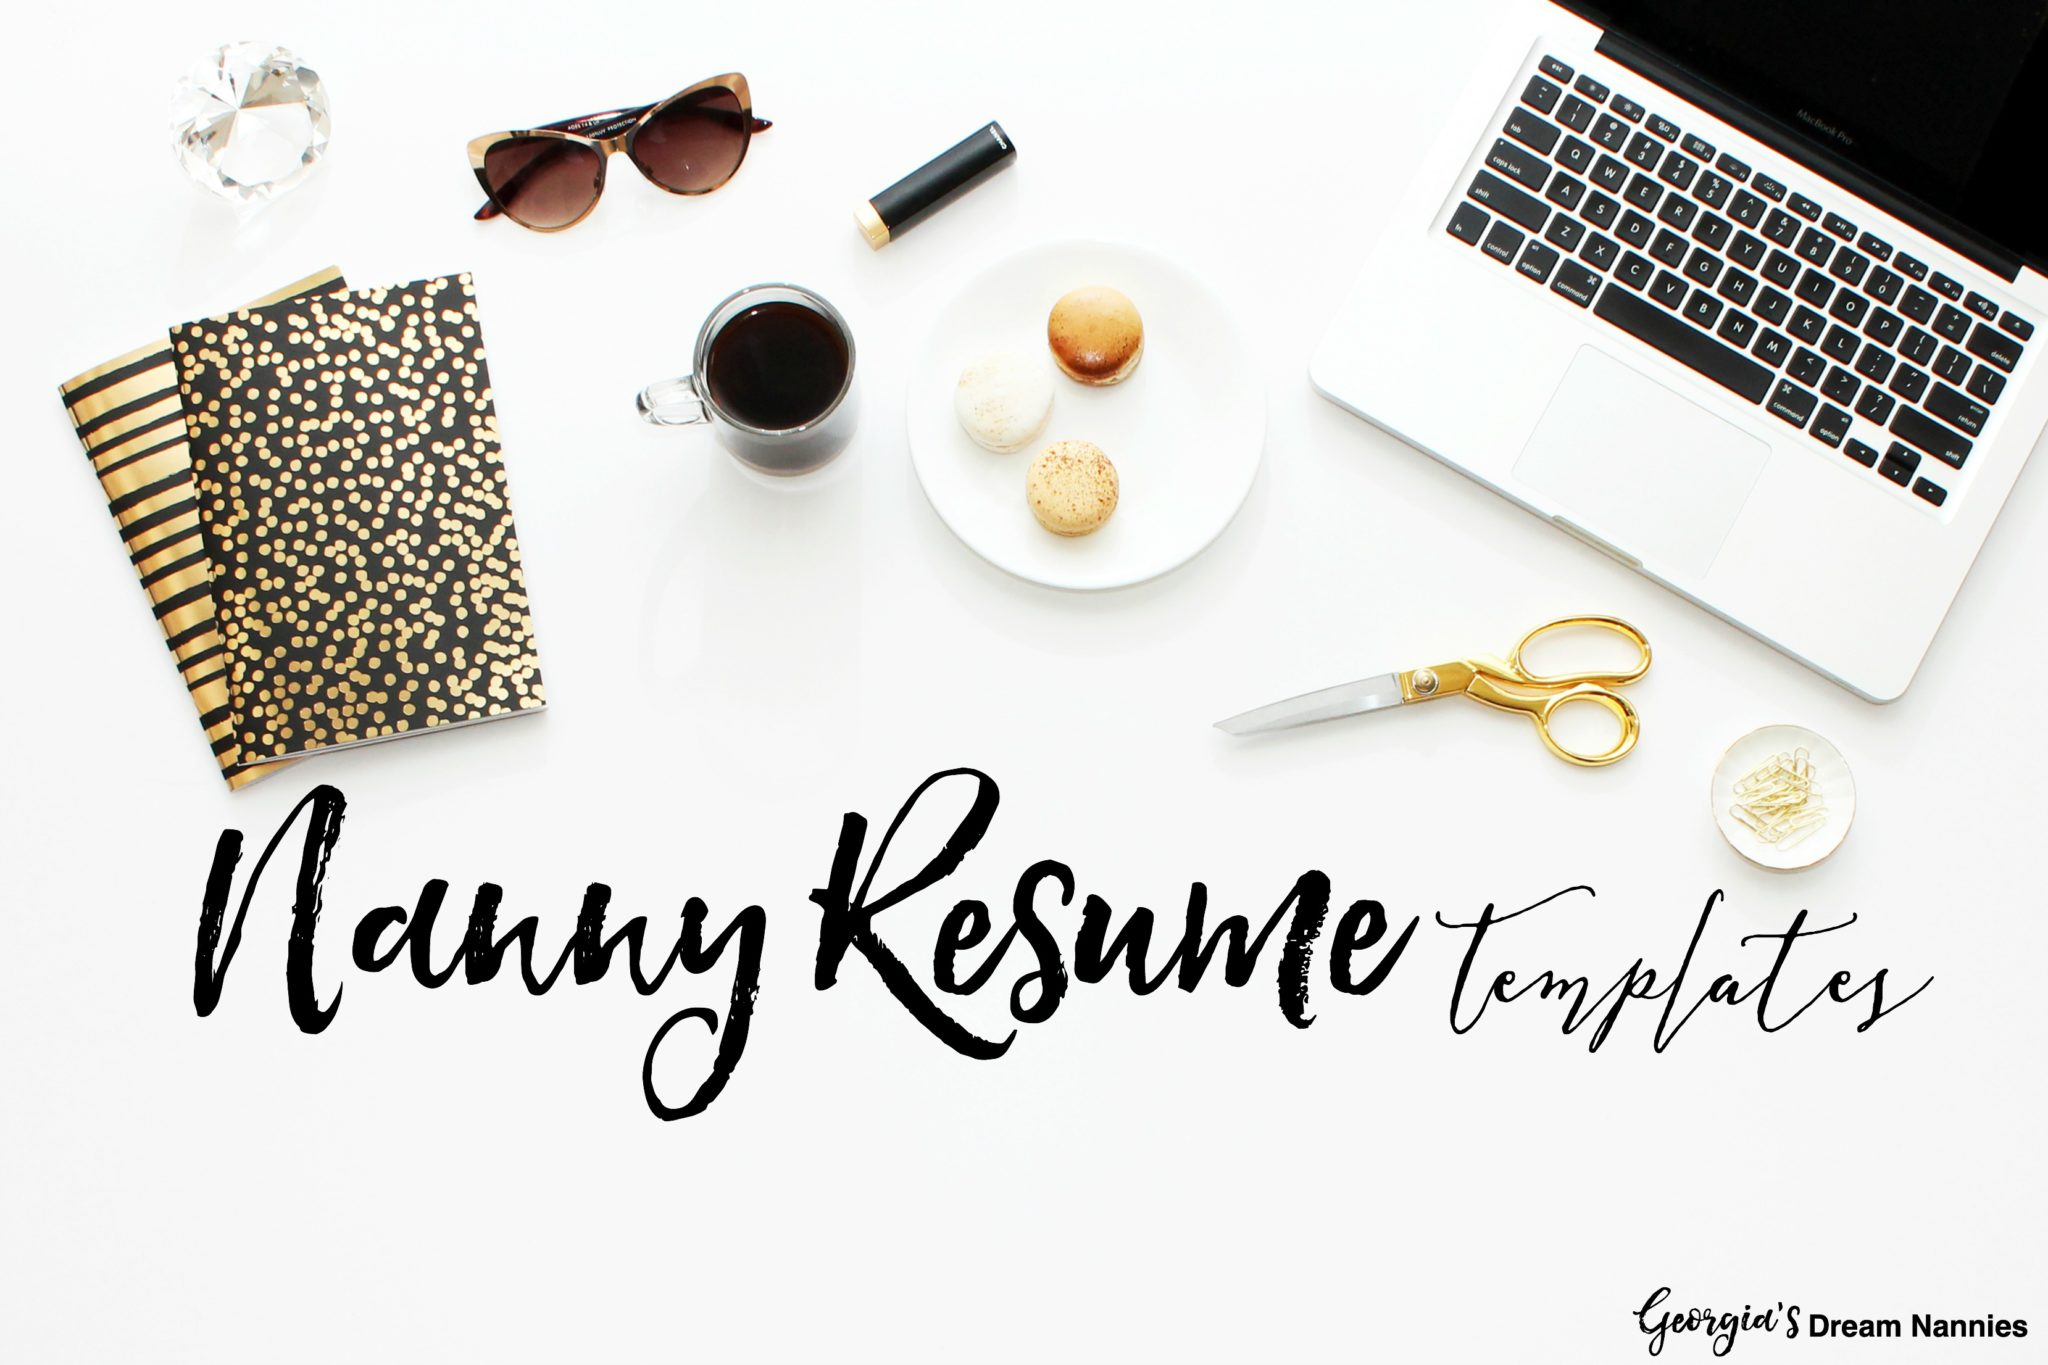 Nanny resume how to create a professional nanny resume nanny need help writing a nanny cover letter and resume madrichimfo Images